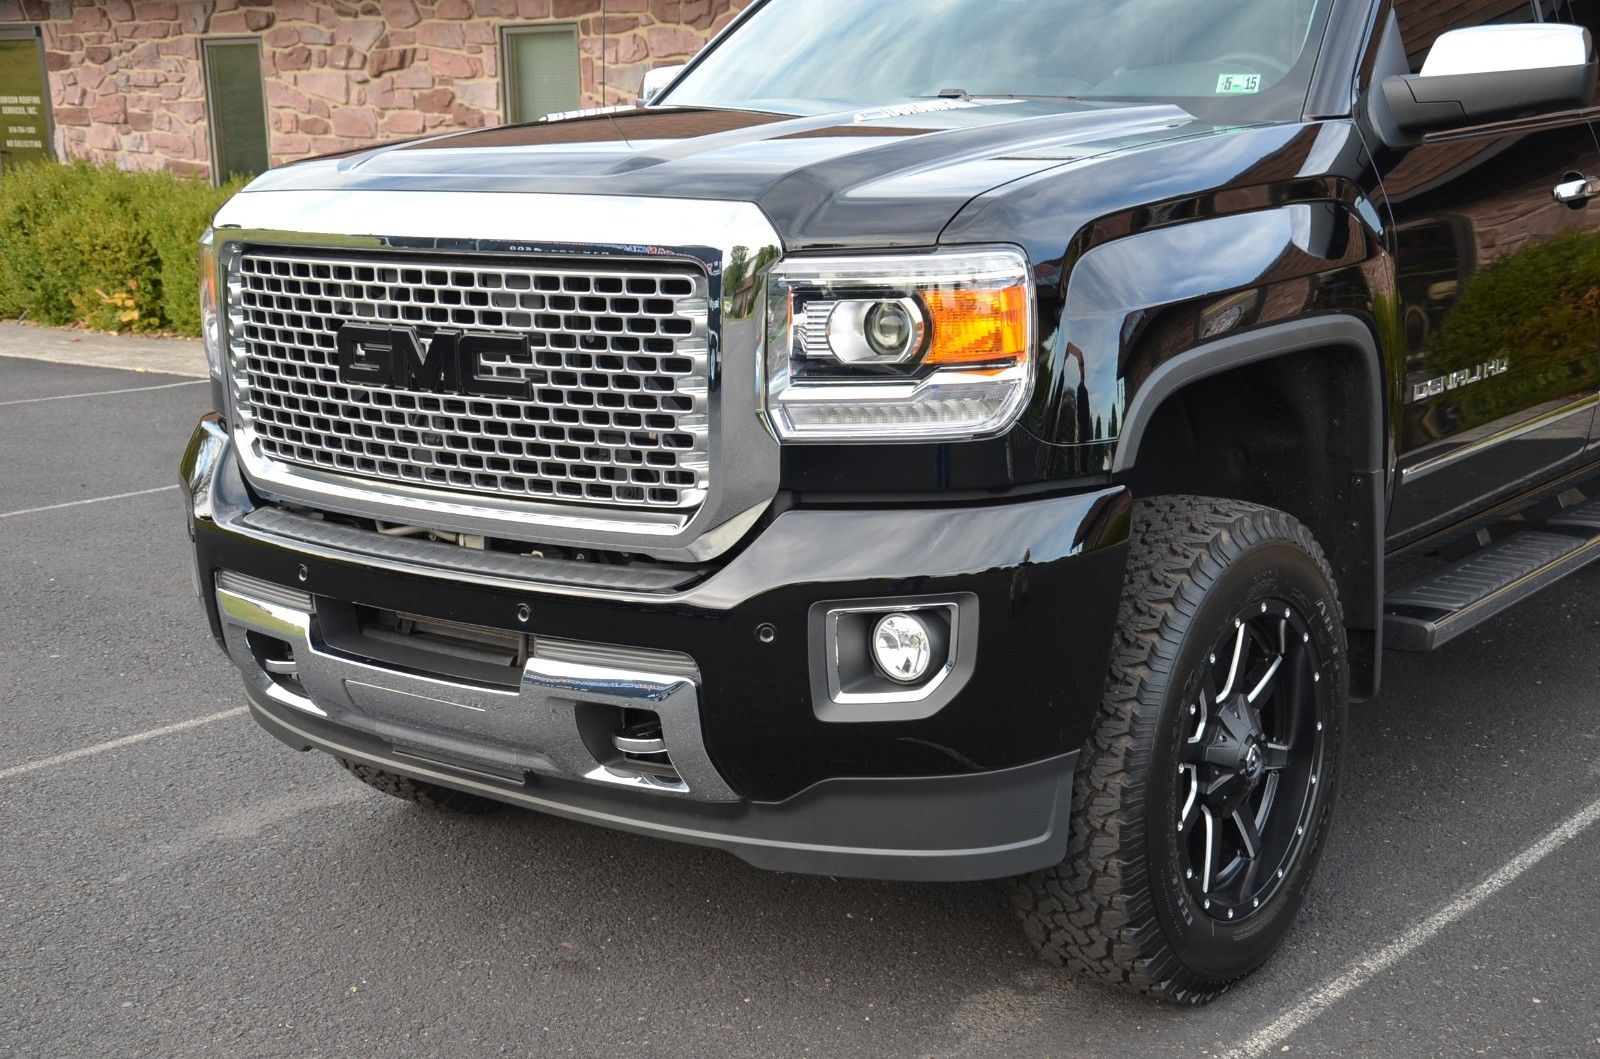 2015 sierra denali bumper grille gap normal chevy and gmc 2015 sierra denali bumper grille gap normal chevy and gmc duramax diesel forum publicscrutiny Choice Image